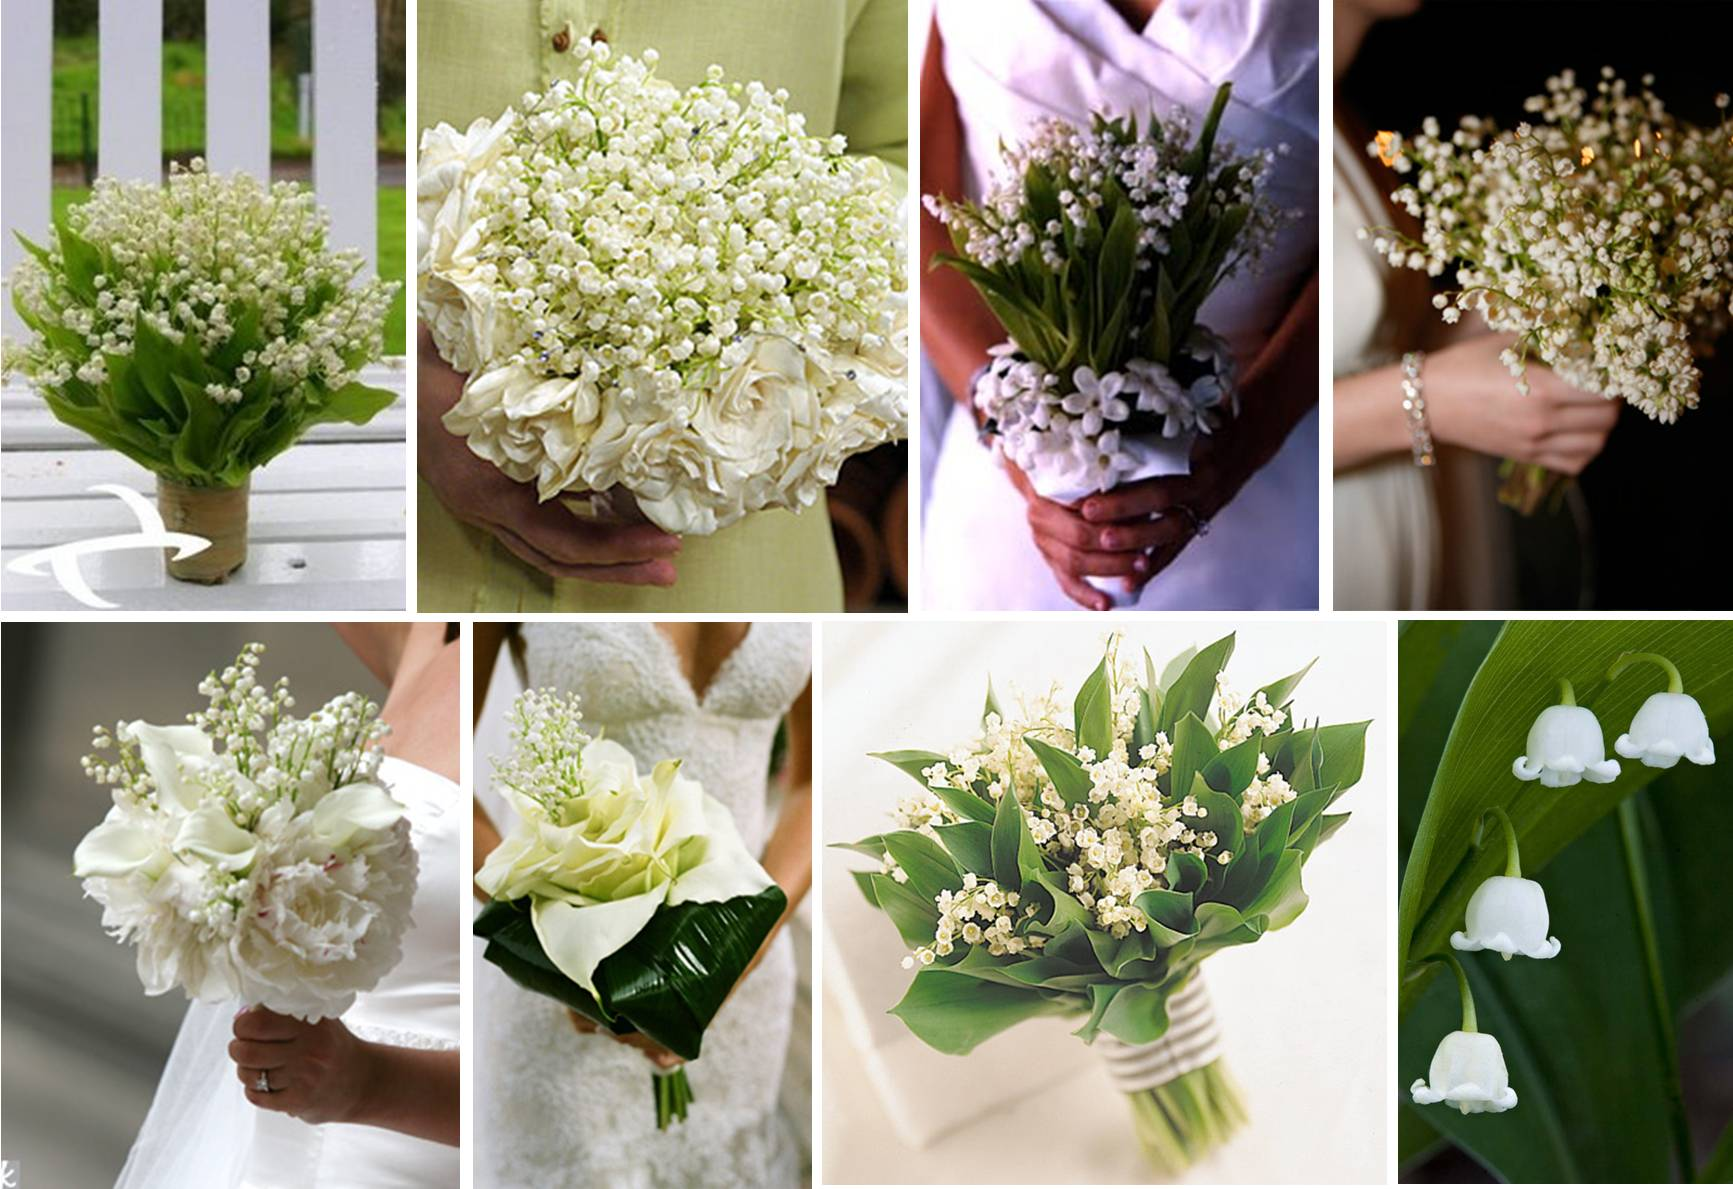 Blooming Lily Of The Valley! | One White Dress Wallpaper